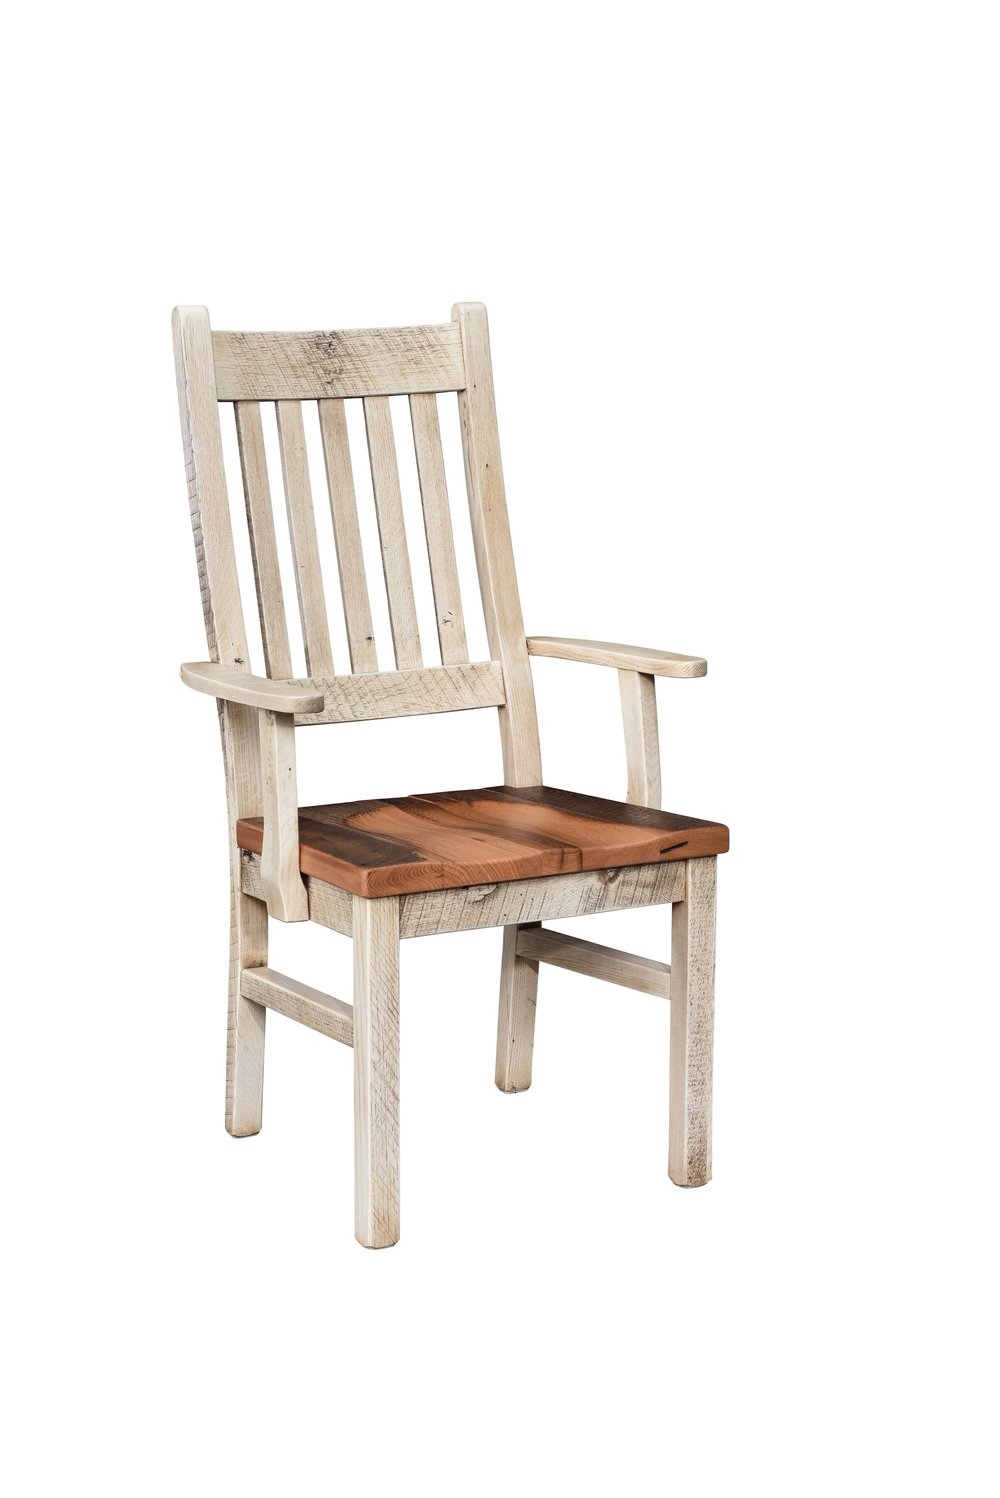 243-FHAC Farmhouse Arm Chair - Sept2017Cat-p64 Bottom.jpg